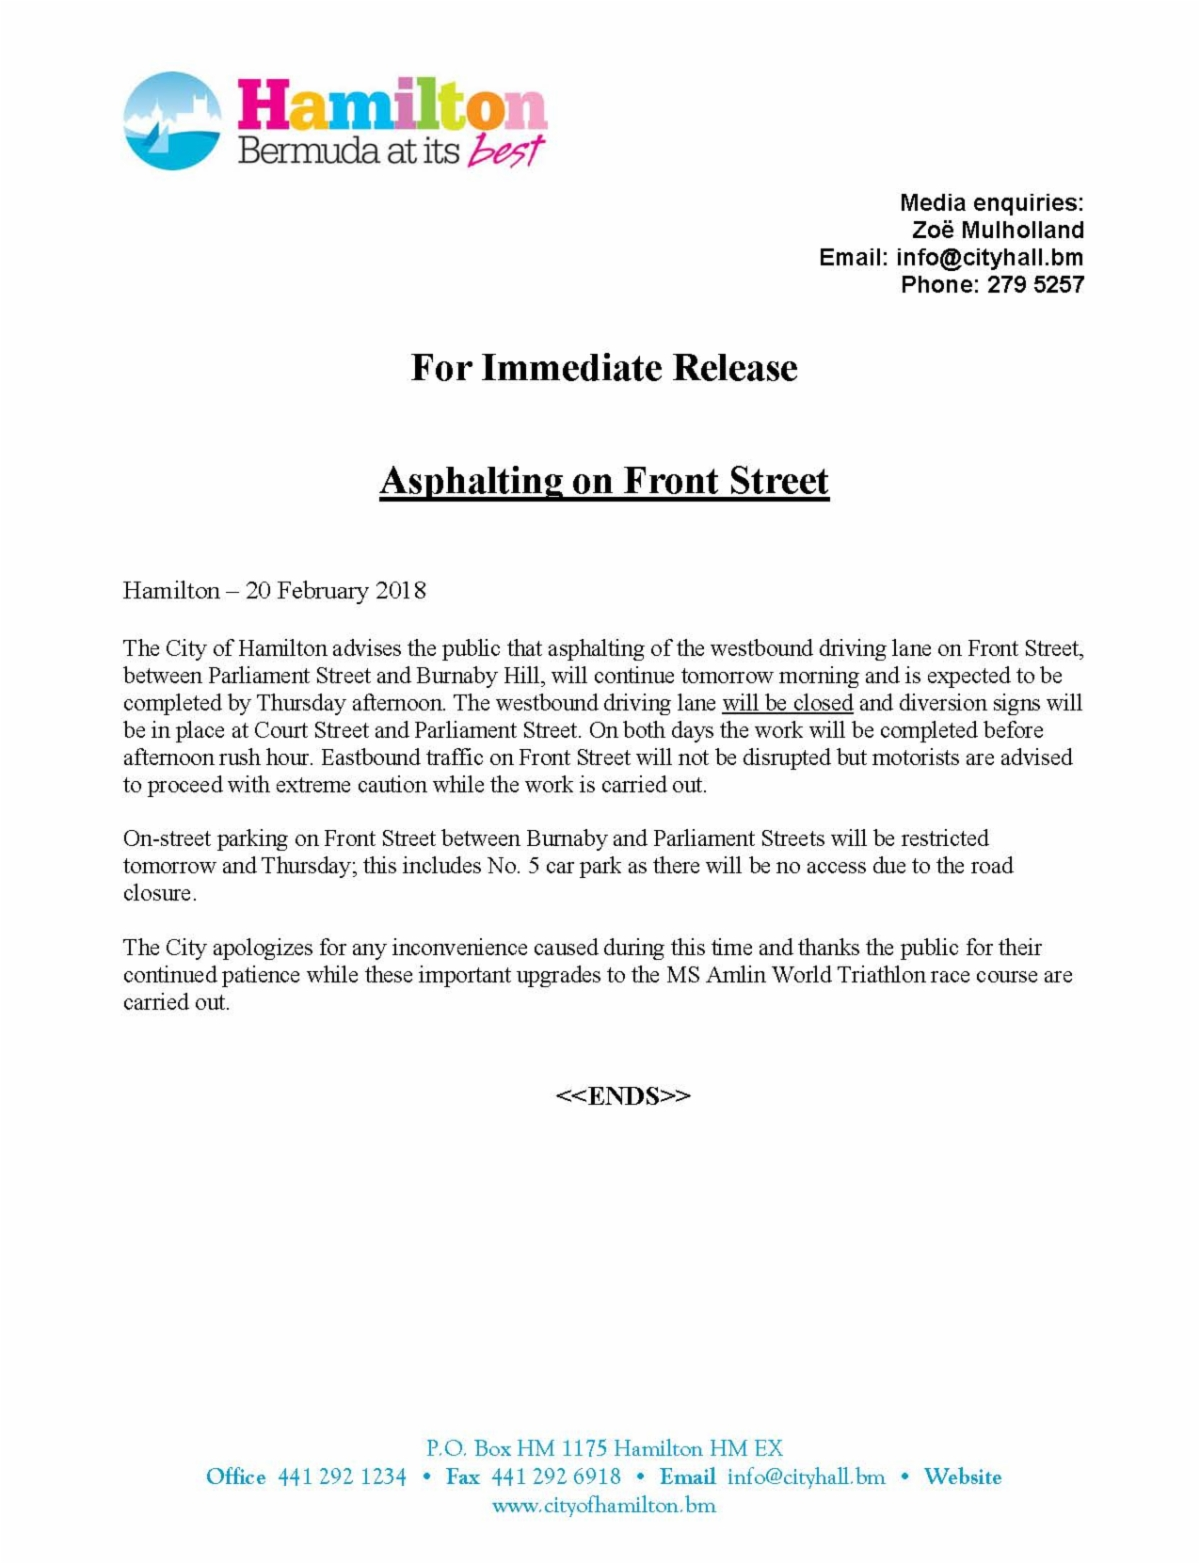 Press_Release___Front_Street_Asphalting___Feb_20__2_